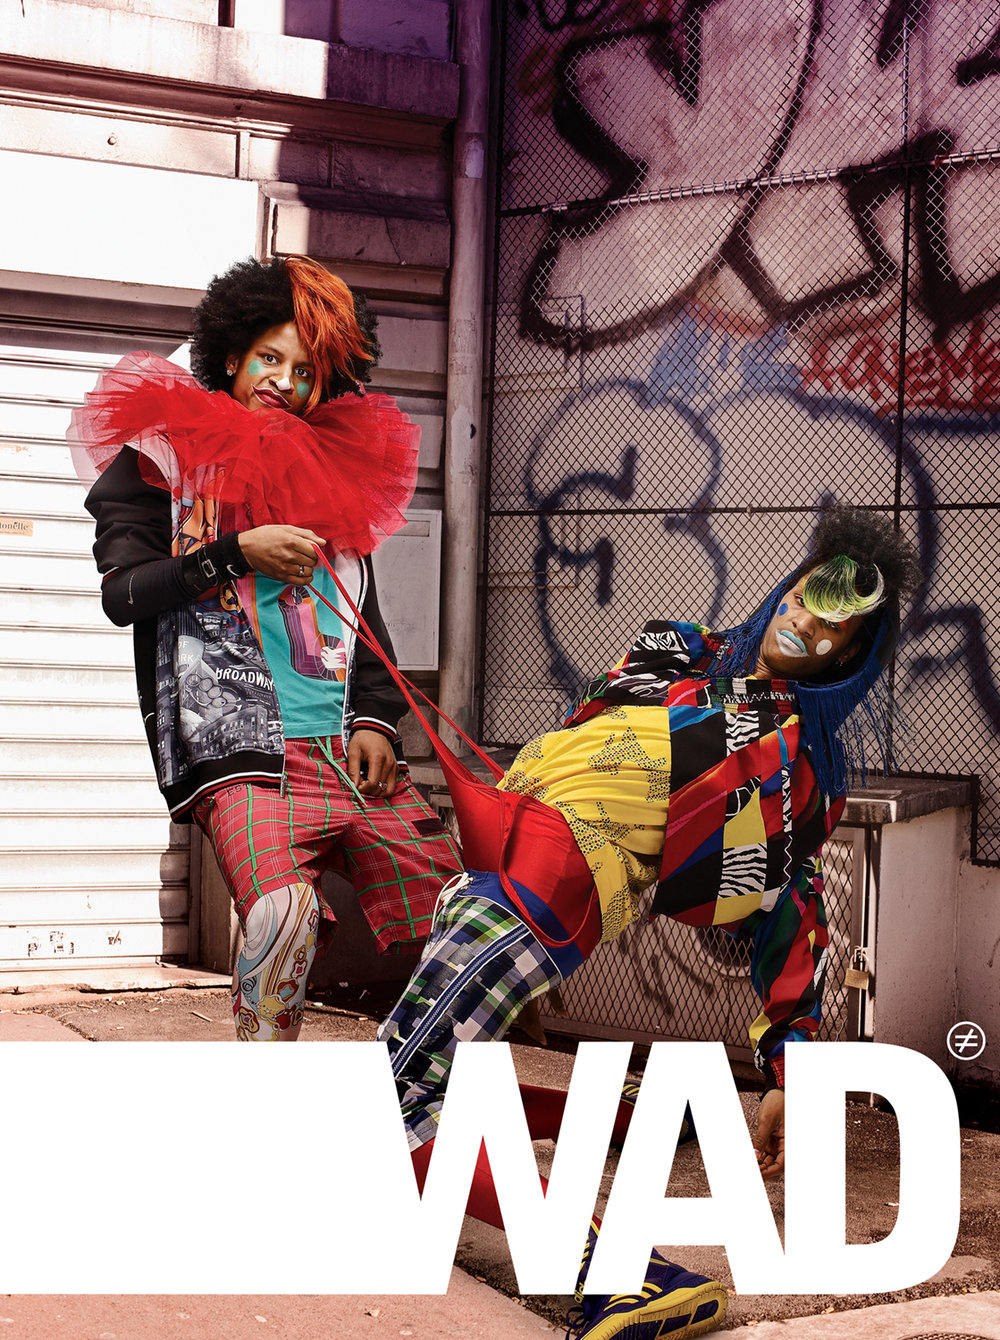 WadeBrothers_commissions_00294.jpg